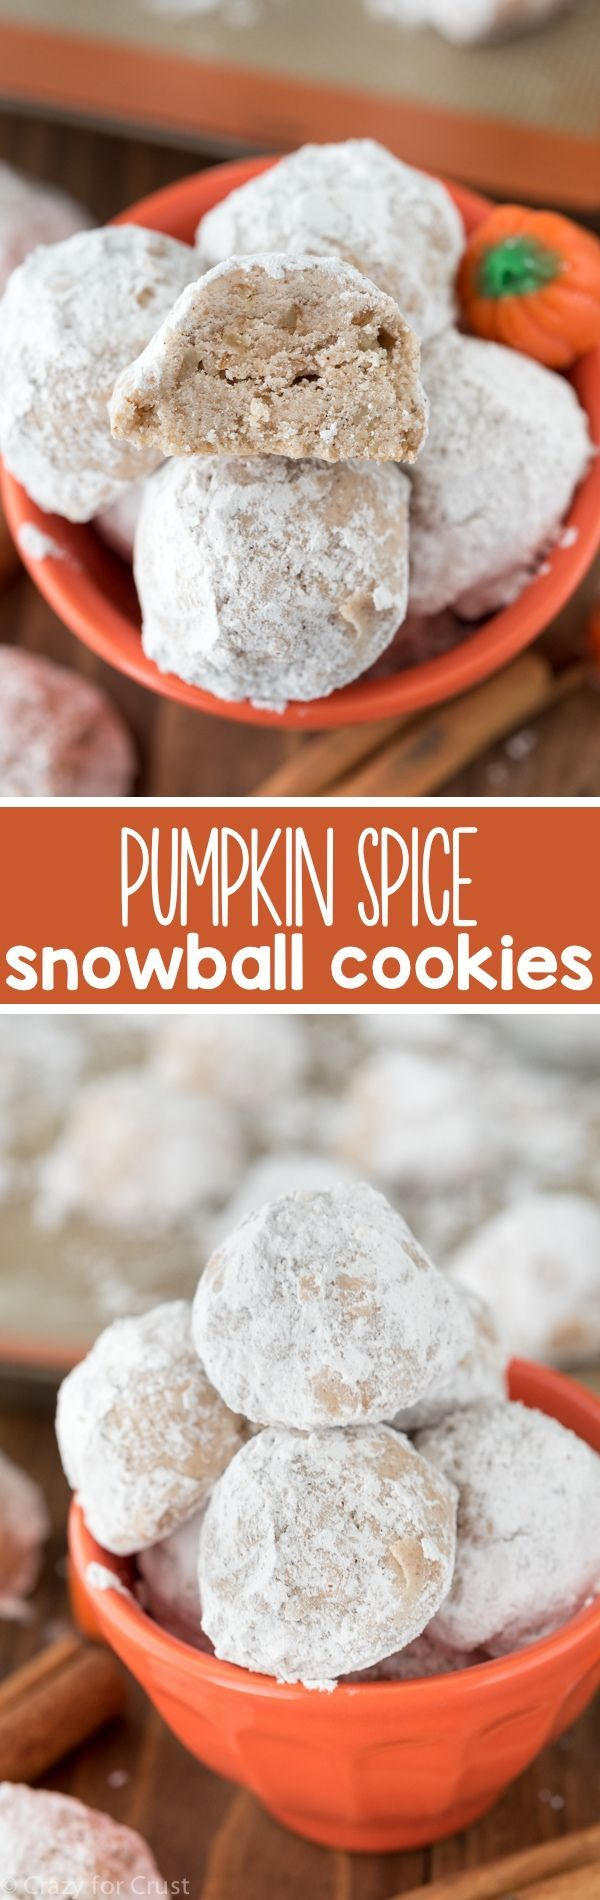 Pumpkin Spice Snowballs - Crazy for Crust